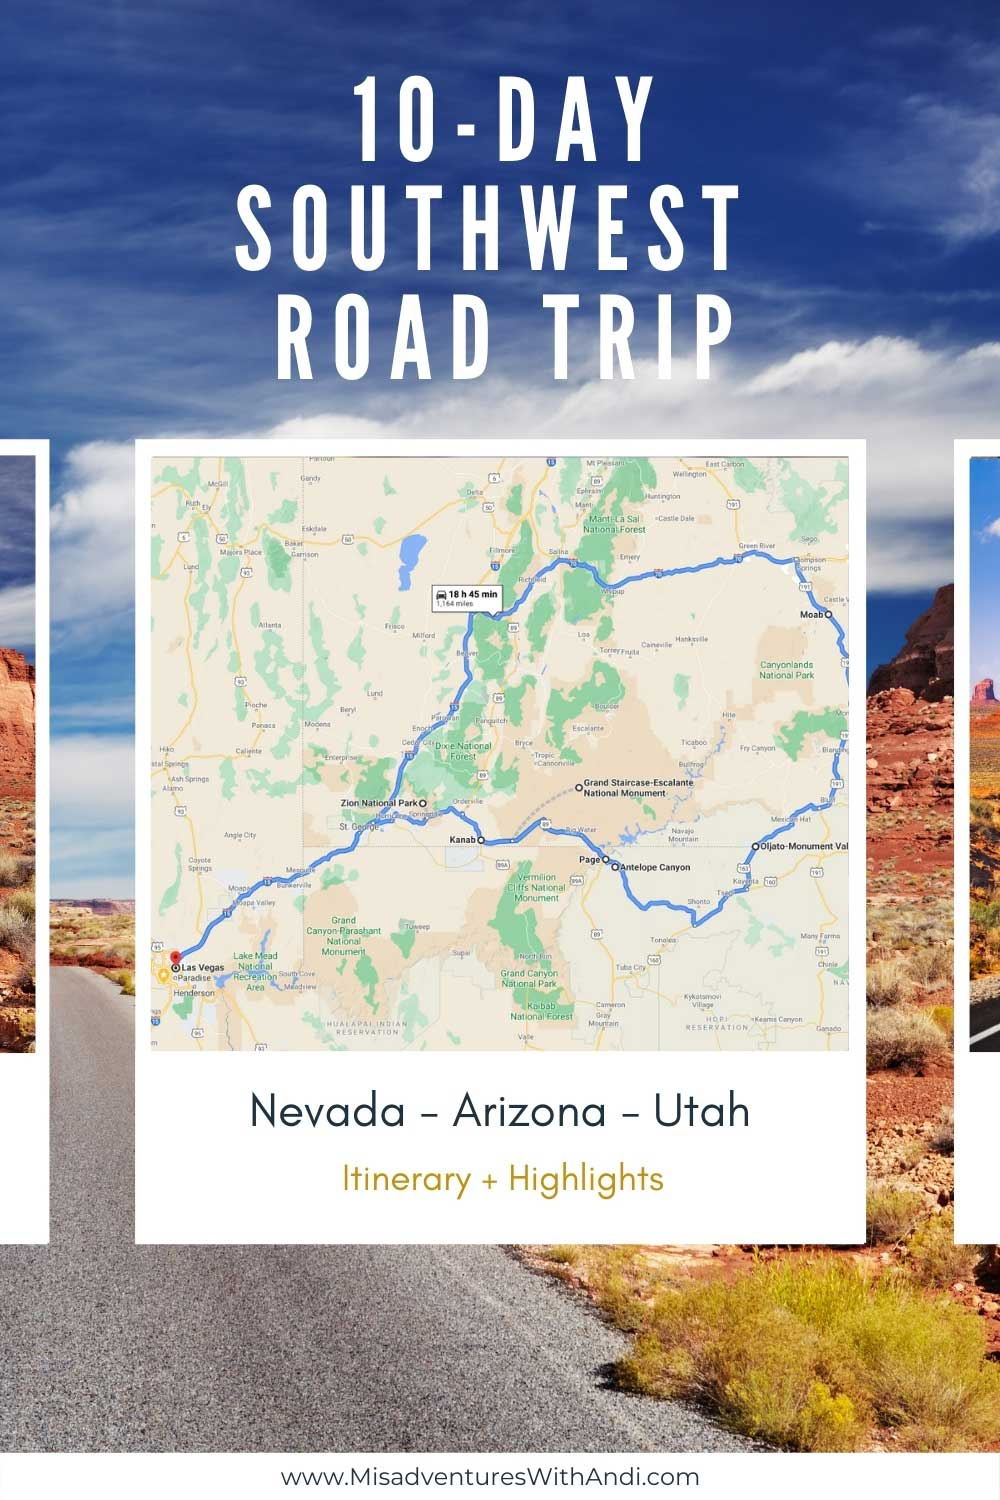 Southwest Road Trip Itinerary - 10 days in and out of Las Vegas